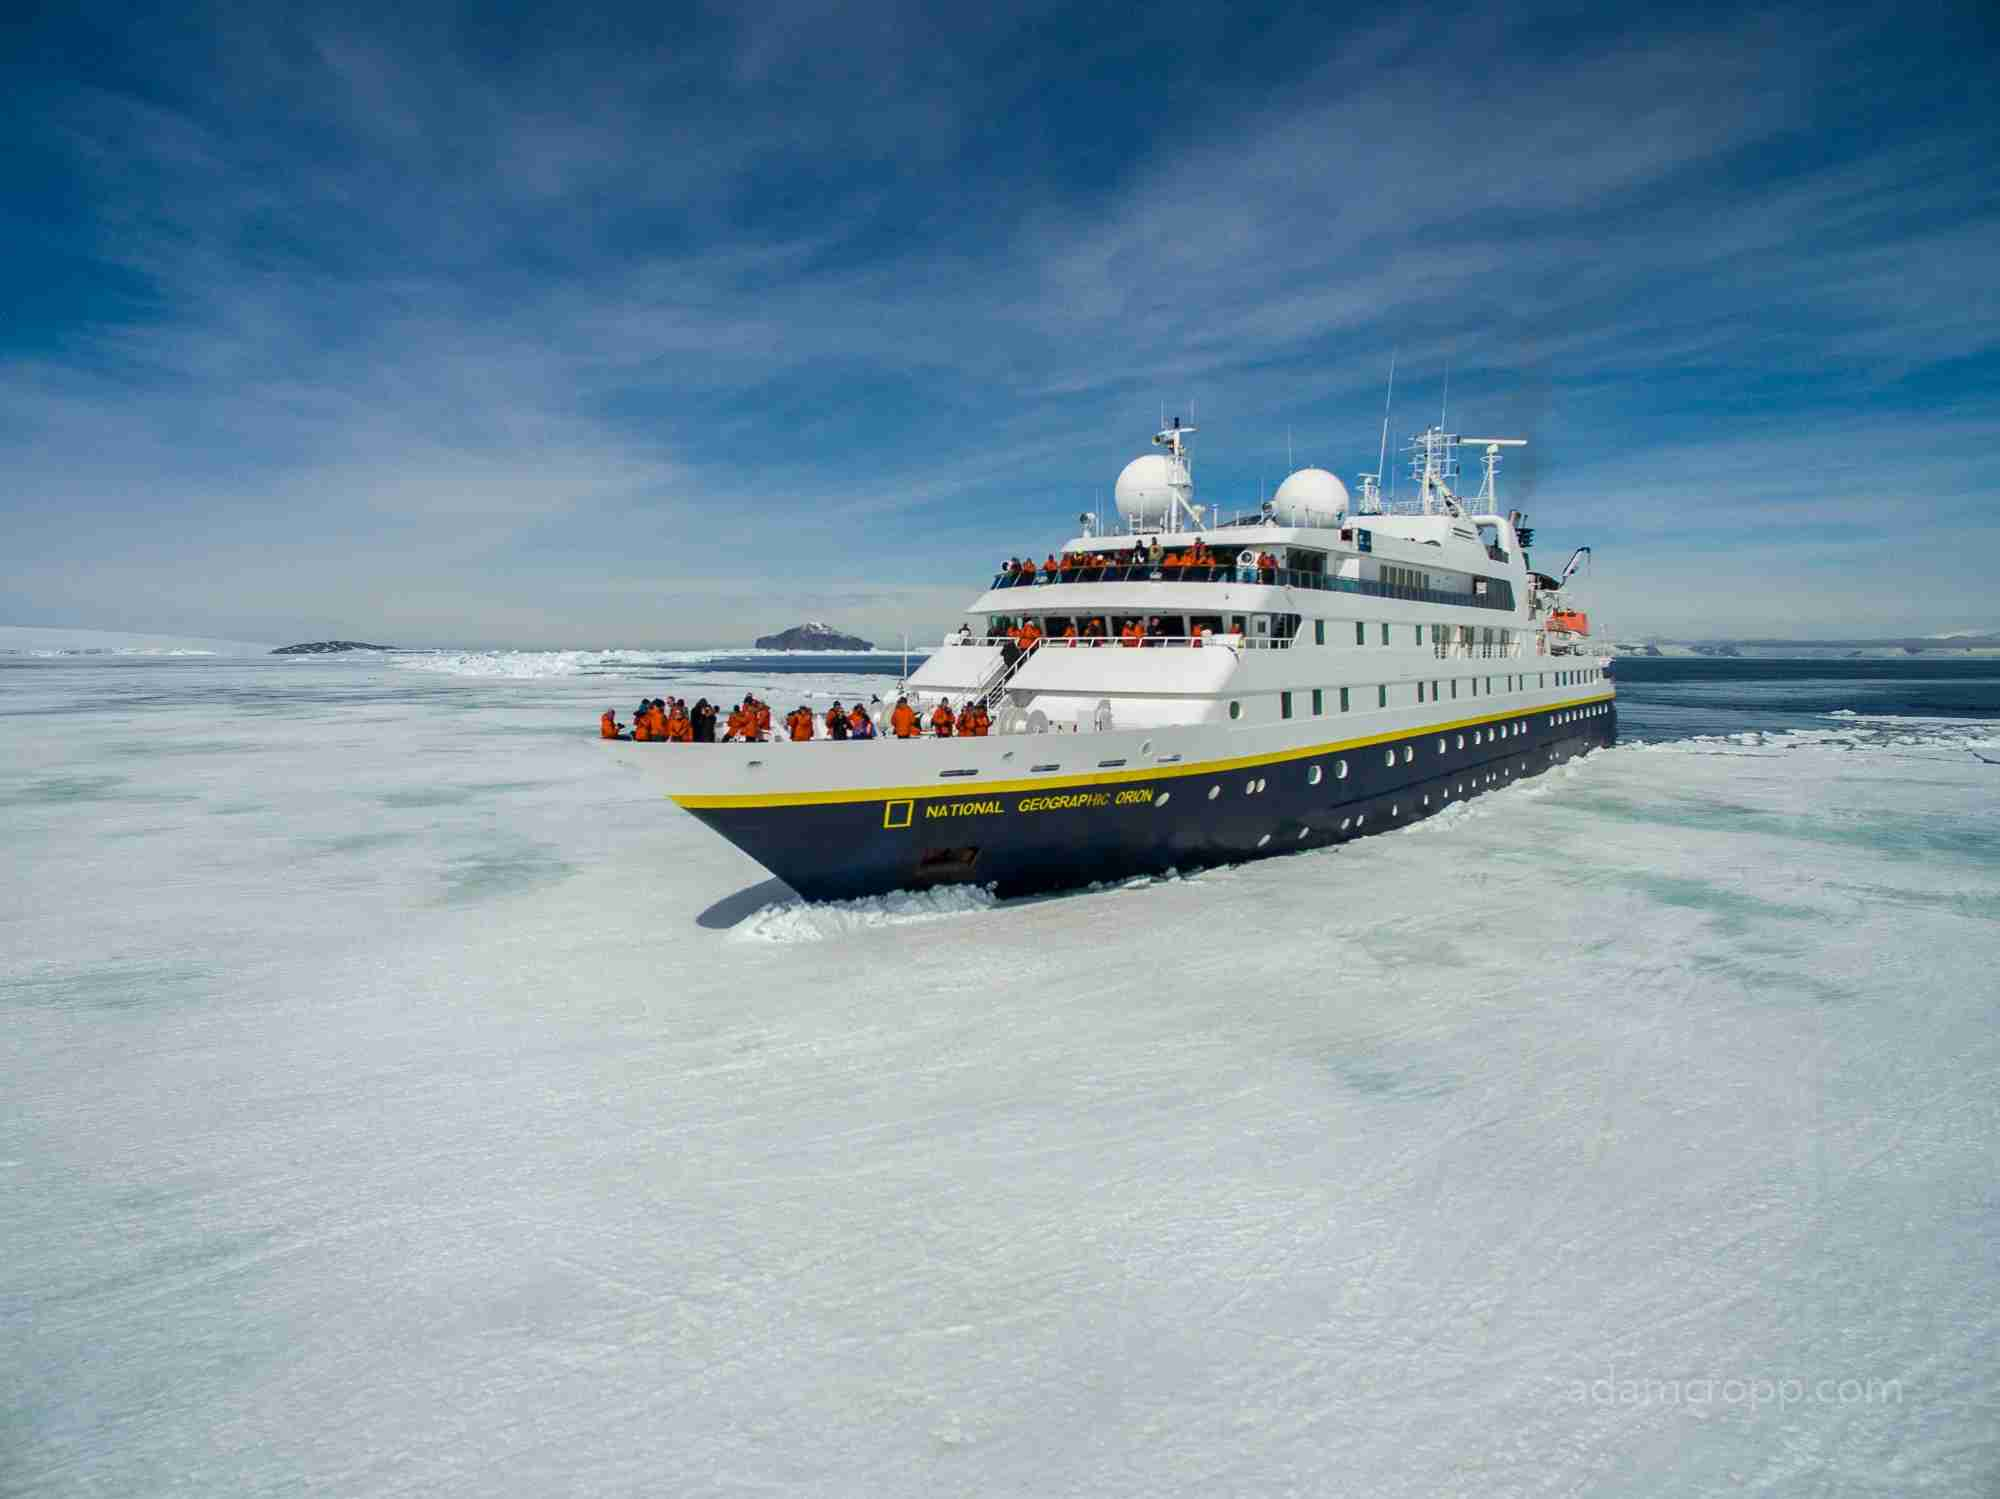 Lindblad Expeditions is known for hardy, expedition-style vessels that can travel deep in polar regions. Photo courtesy of Lindblad Expeditions.